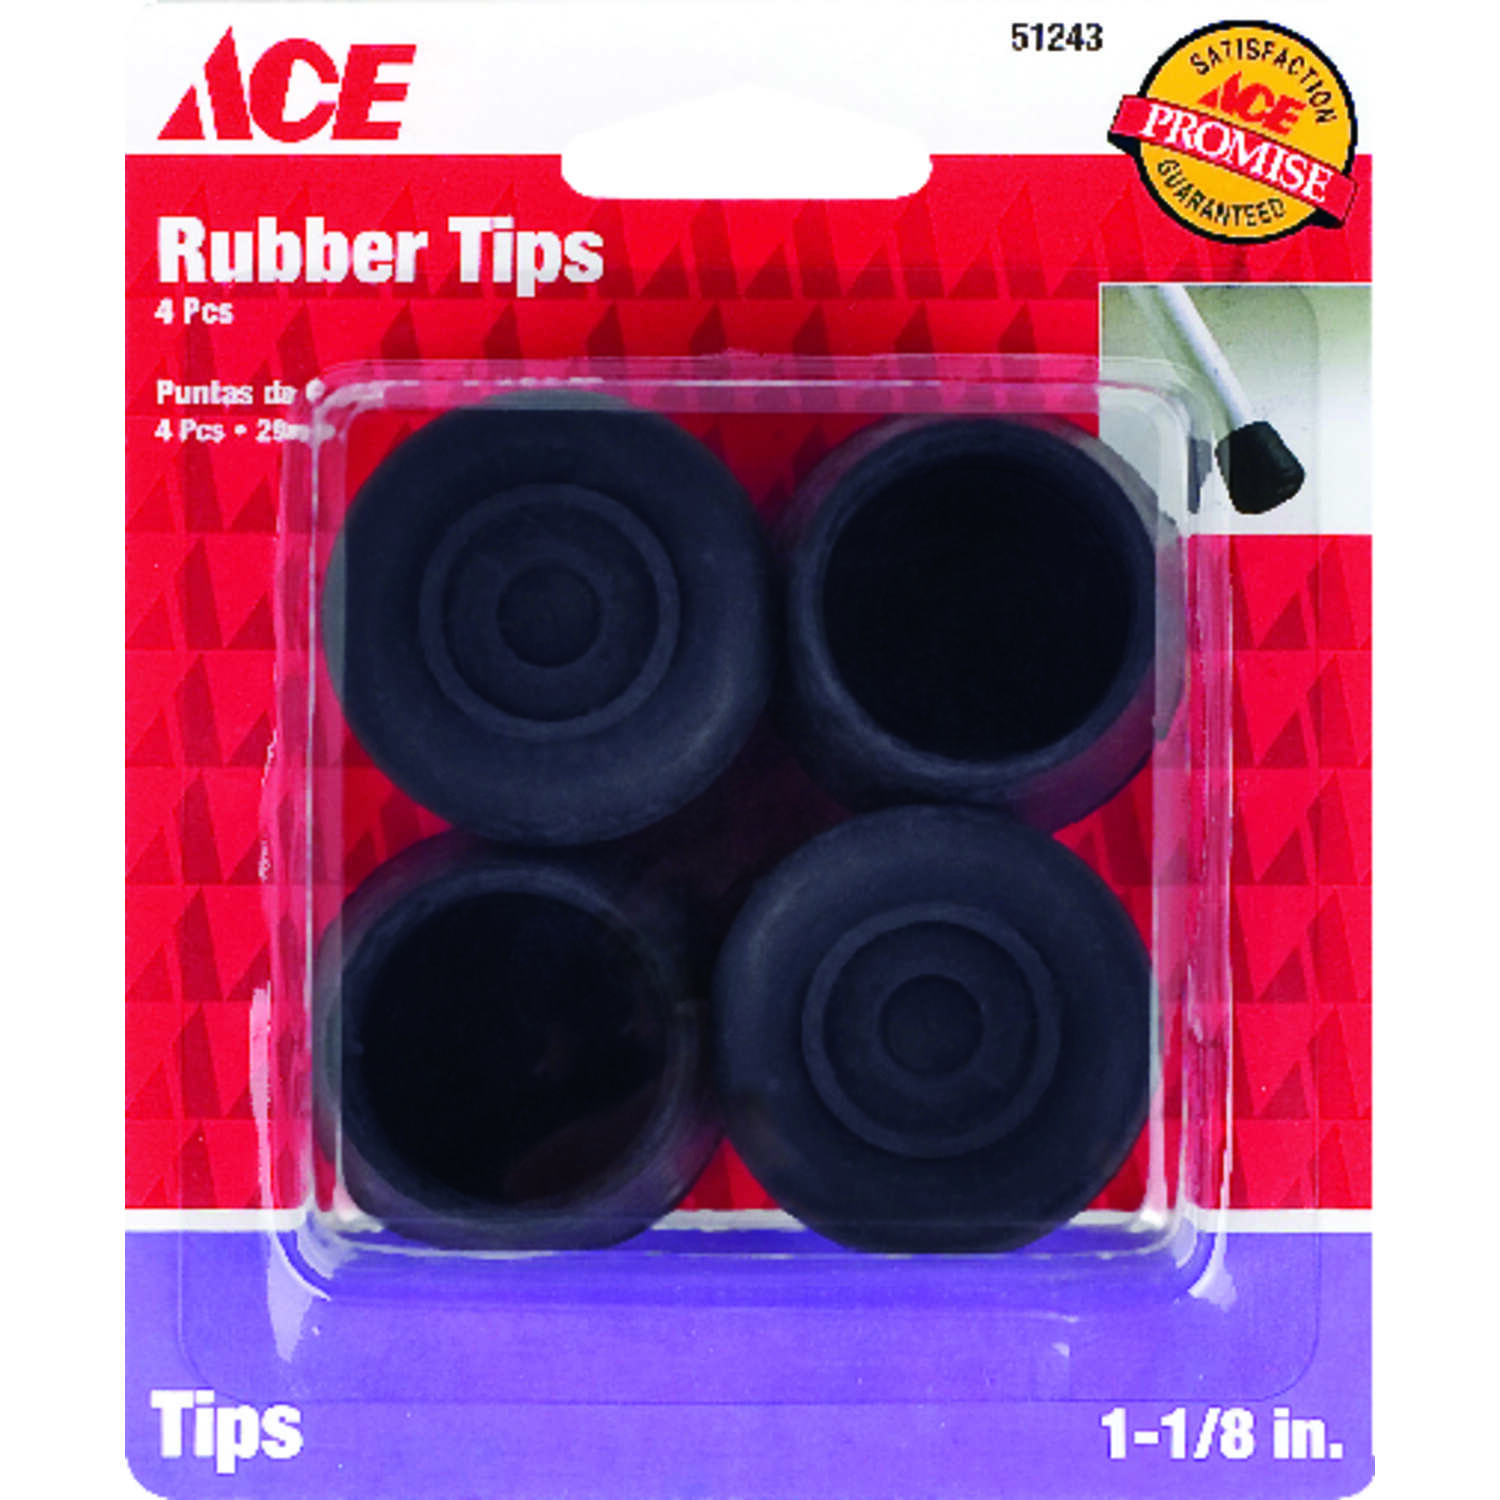 Ace  Rubber  Leg Tip  Black  Round  1-1/8 in. W 4 pk